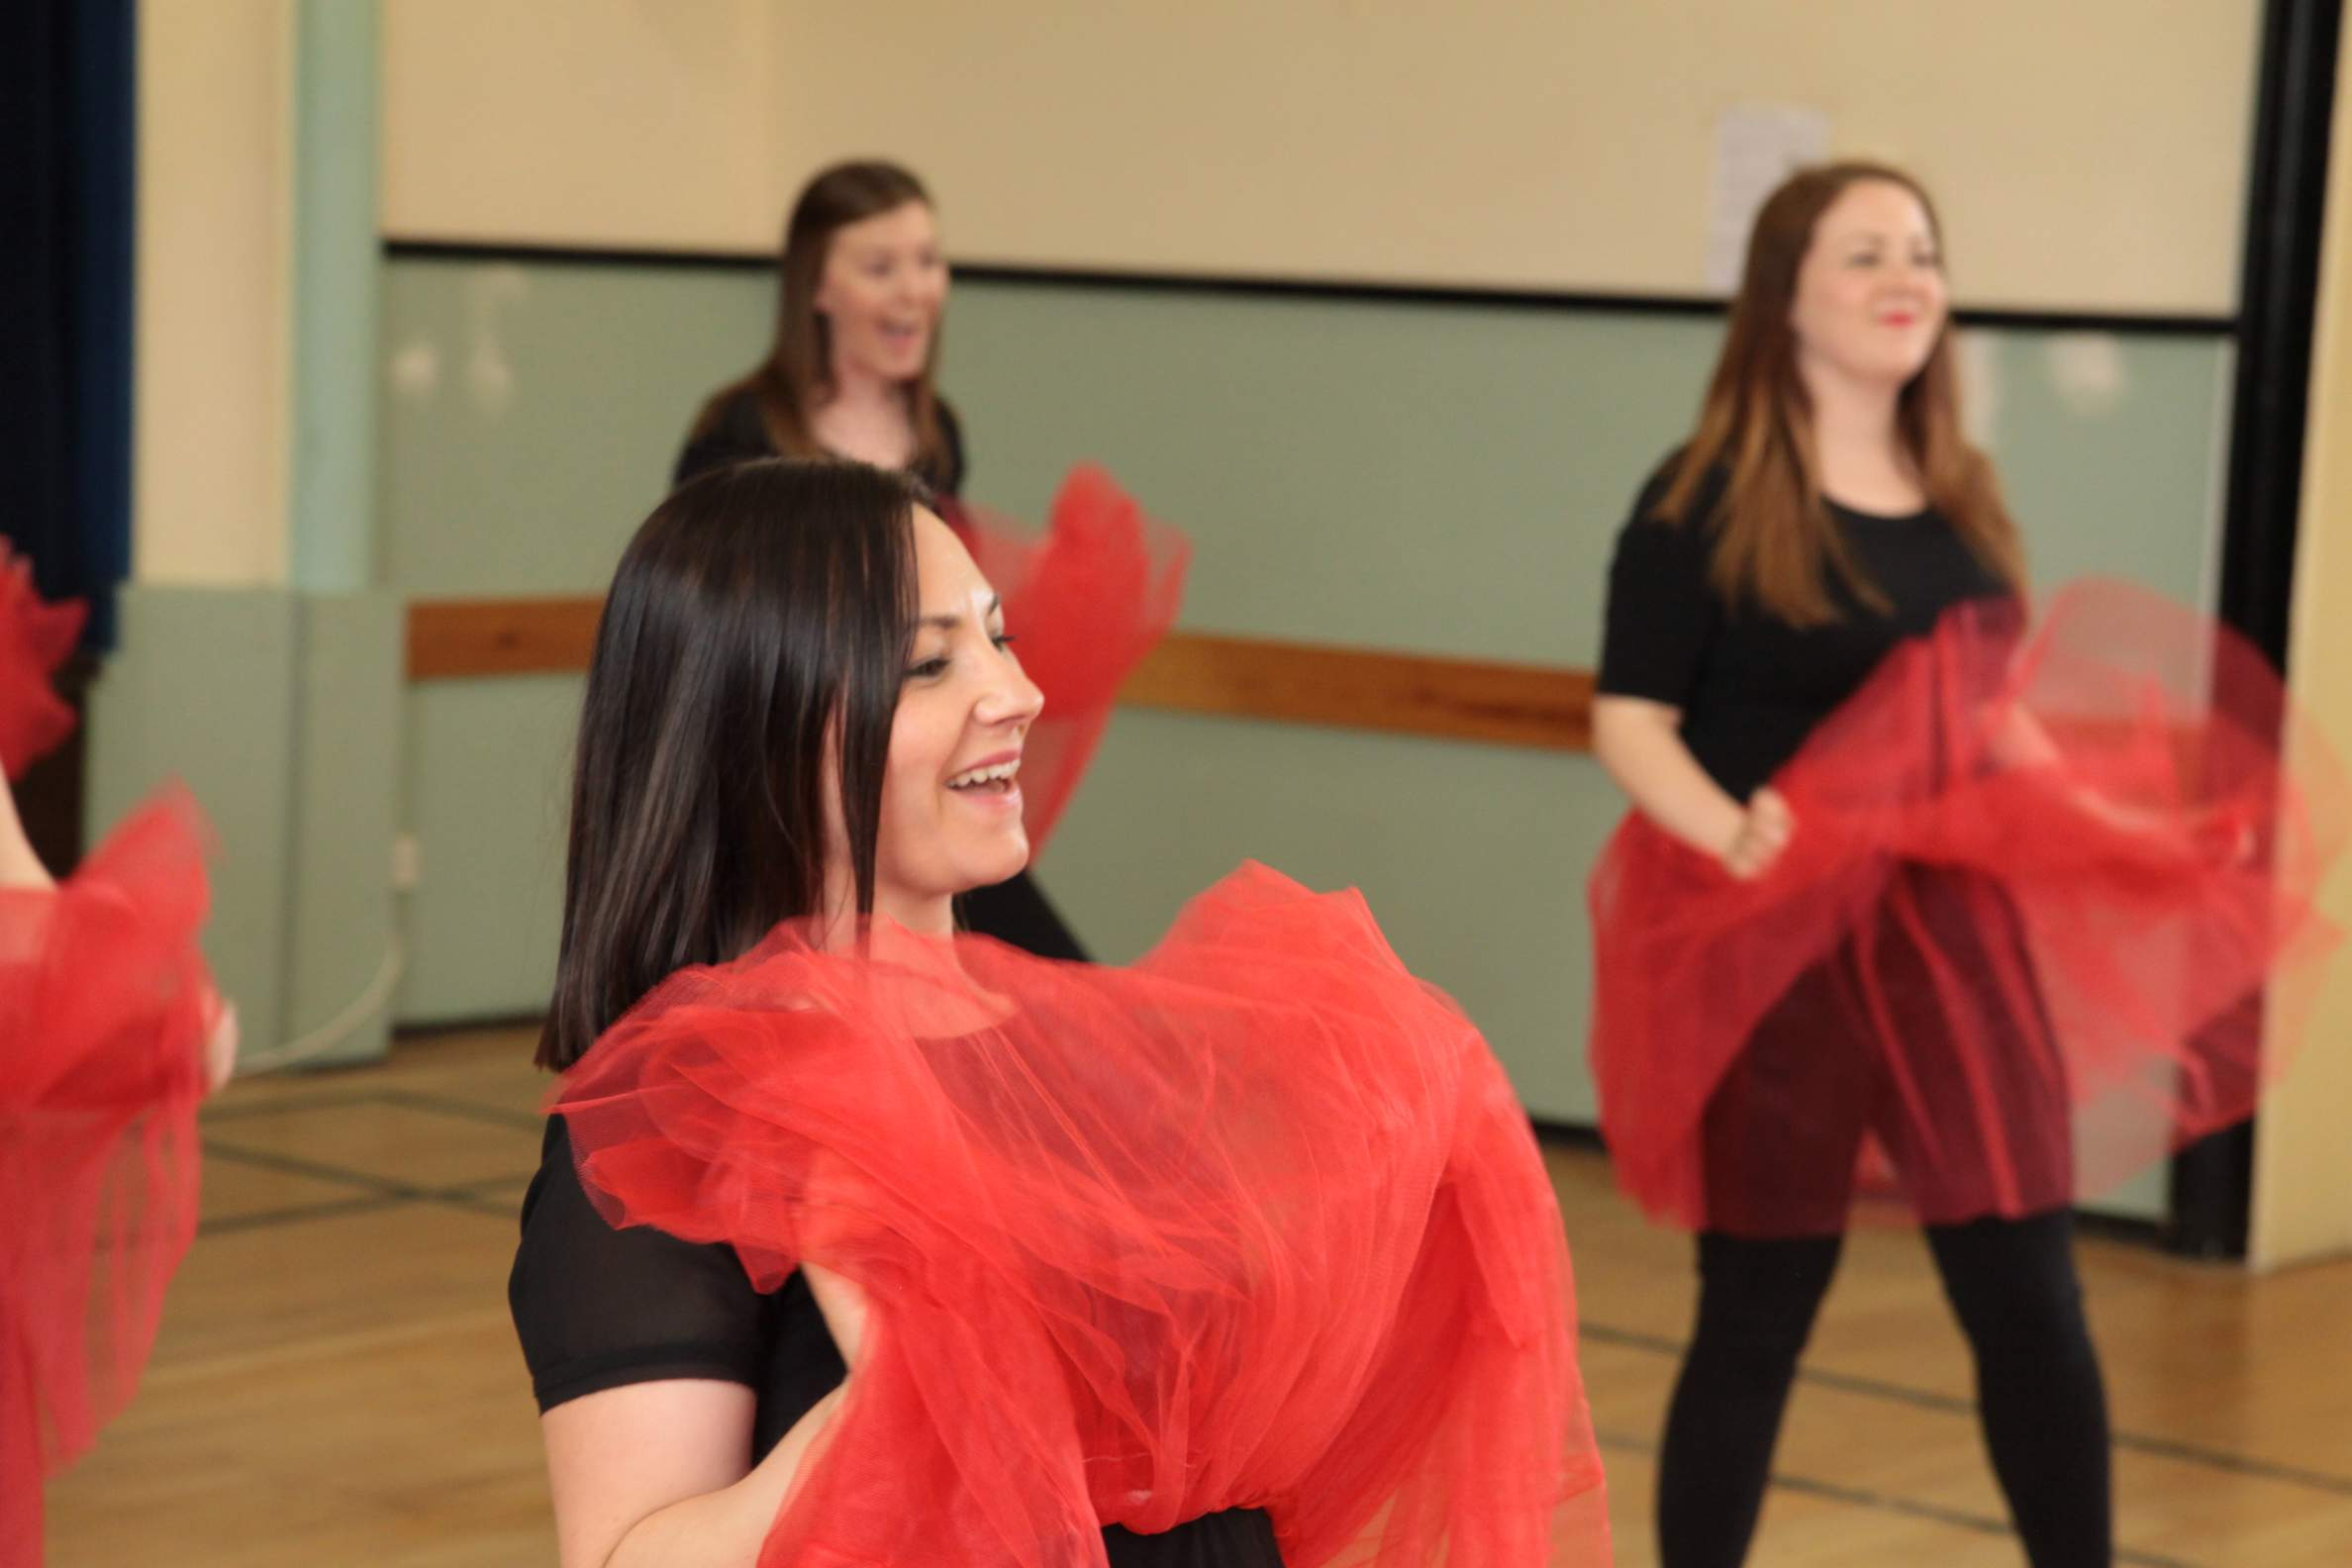 Hens laughing and dancing at their hen dance party